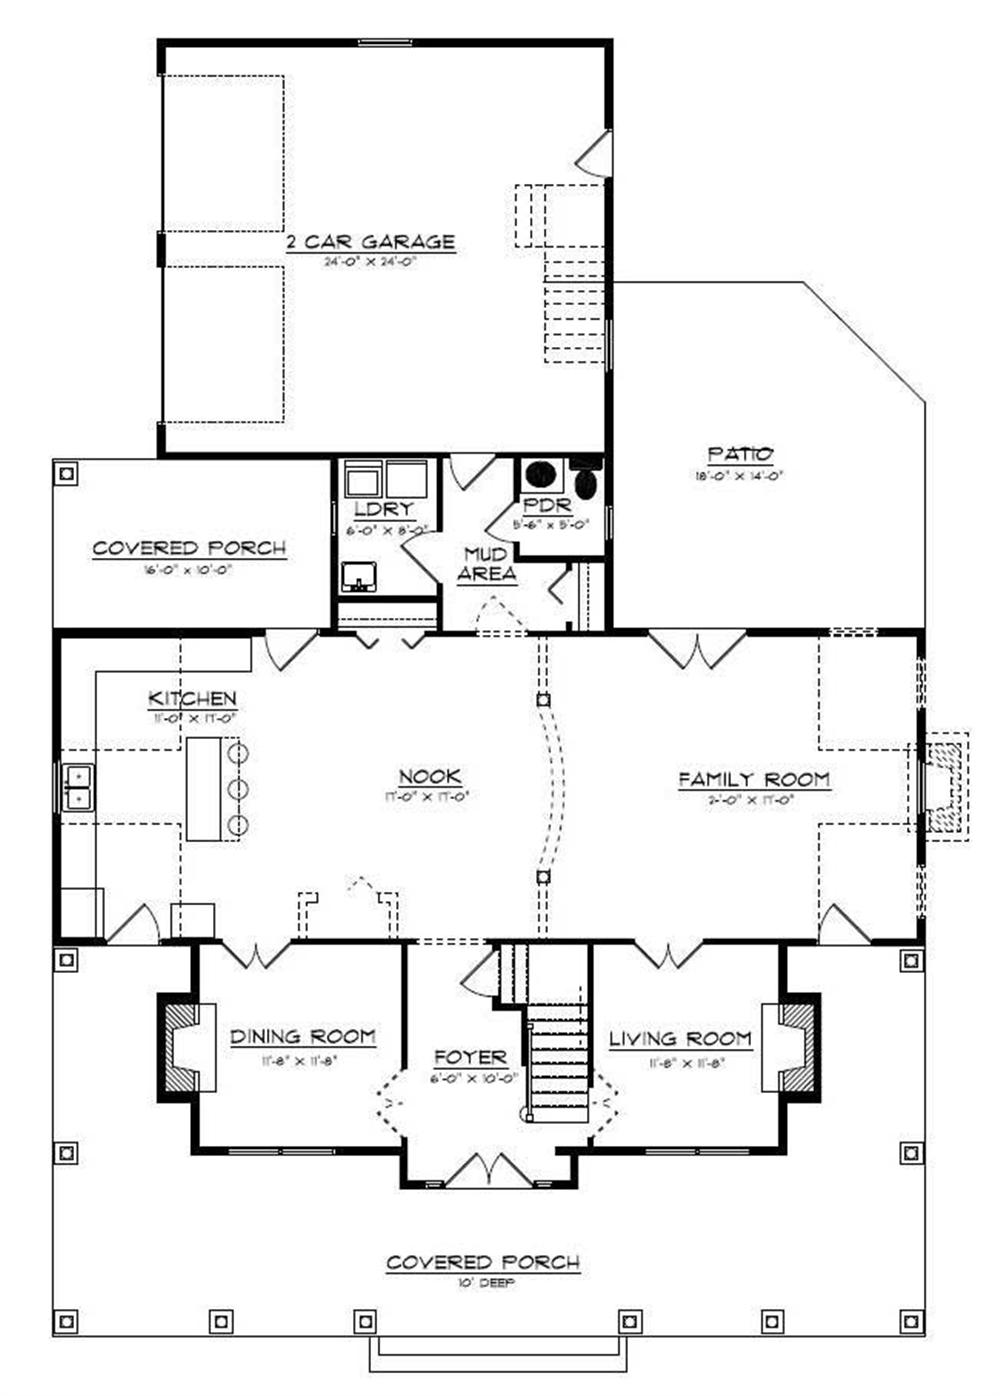 Floor Plan Fifth Story for country home plans # CR-534-B